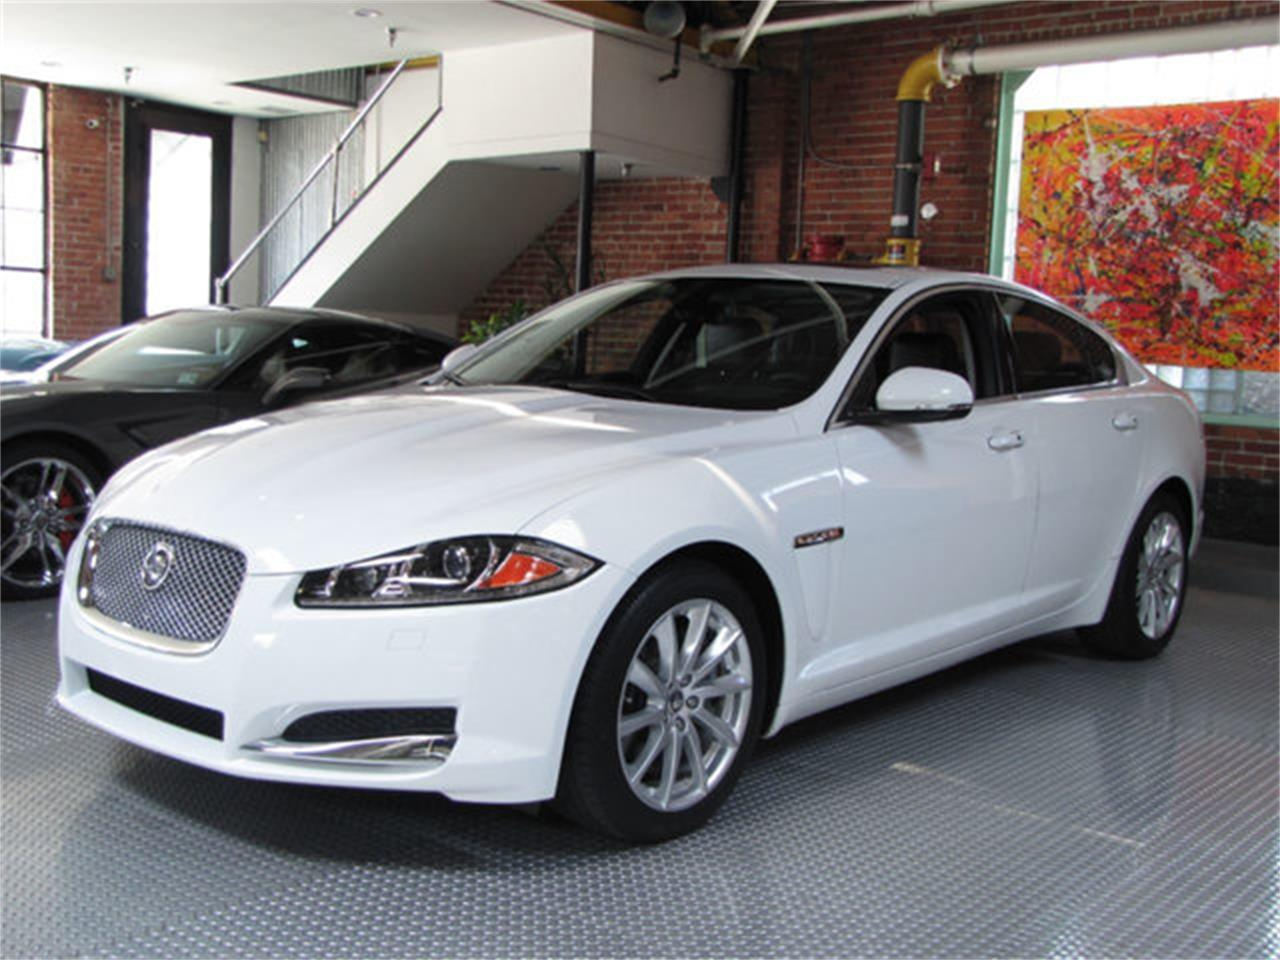 Large Picture of '13 Jaguar XF located in California - $23,750.00 - LEJJ